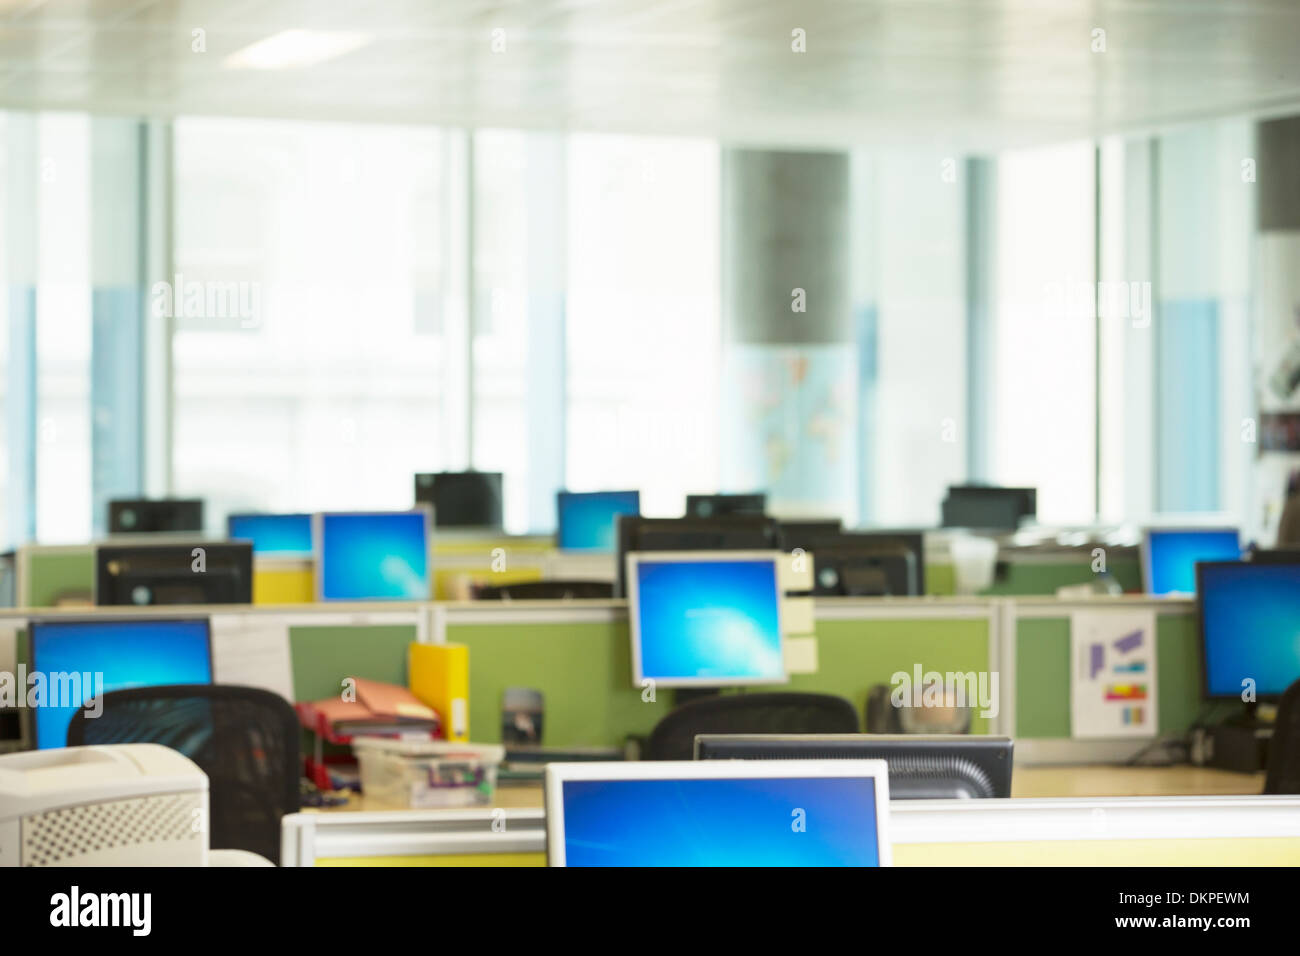 Computers in empty office - Stock Image